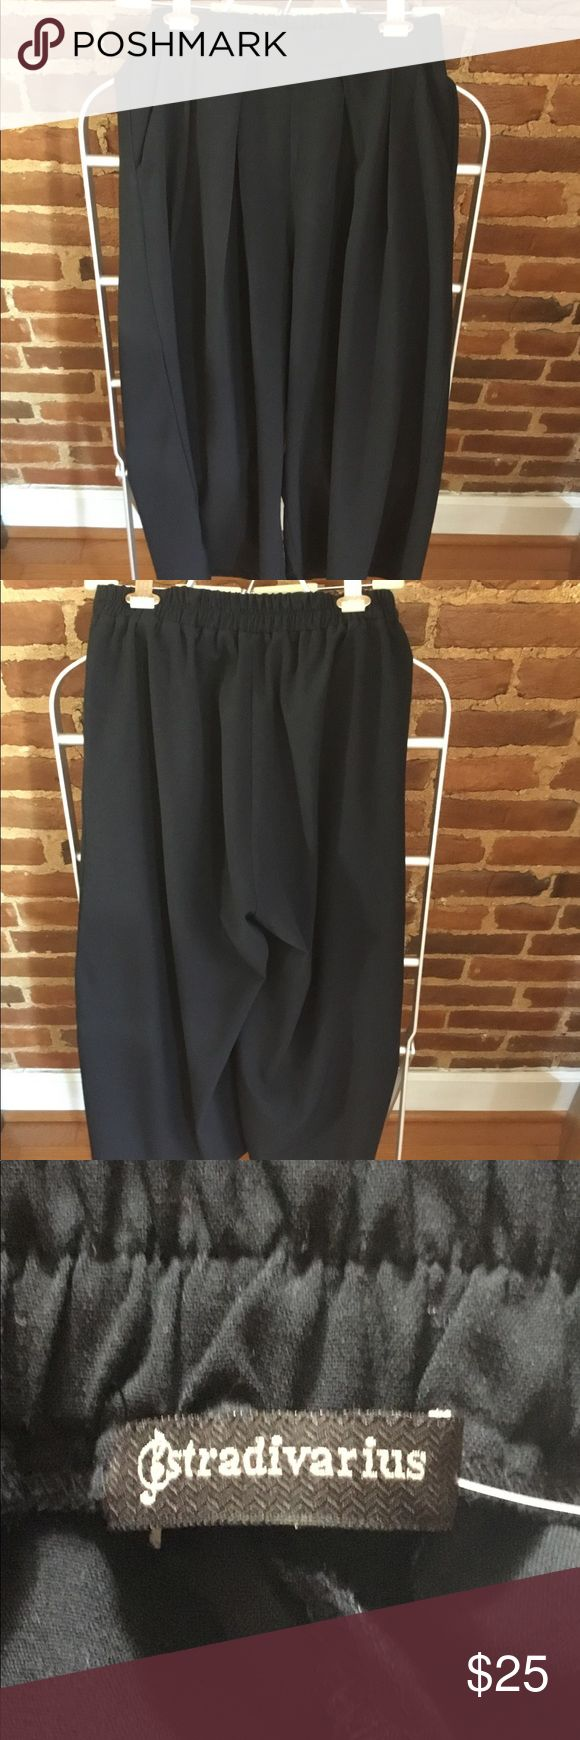 """Dk Navy Blue Wide-Leg Crop Pant Stylish pant/trouser with cropped wide-legs and 2 side pockets.  Can be dressed up or down with flats, heels or boots.  POINT OF NOTE: Size as marked on tags but may fit smaller APPROX. SIZE:  US/EUR M  LENGTH:  34"""" DETAILS:  Front pleats, partial elastic waist CONDITION:  Excellent From a smoke-free and organized closet home. stradivarius Pants Ankle & Cropped"""